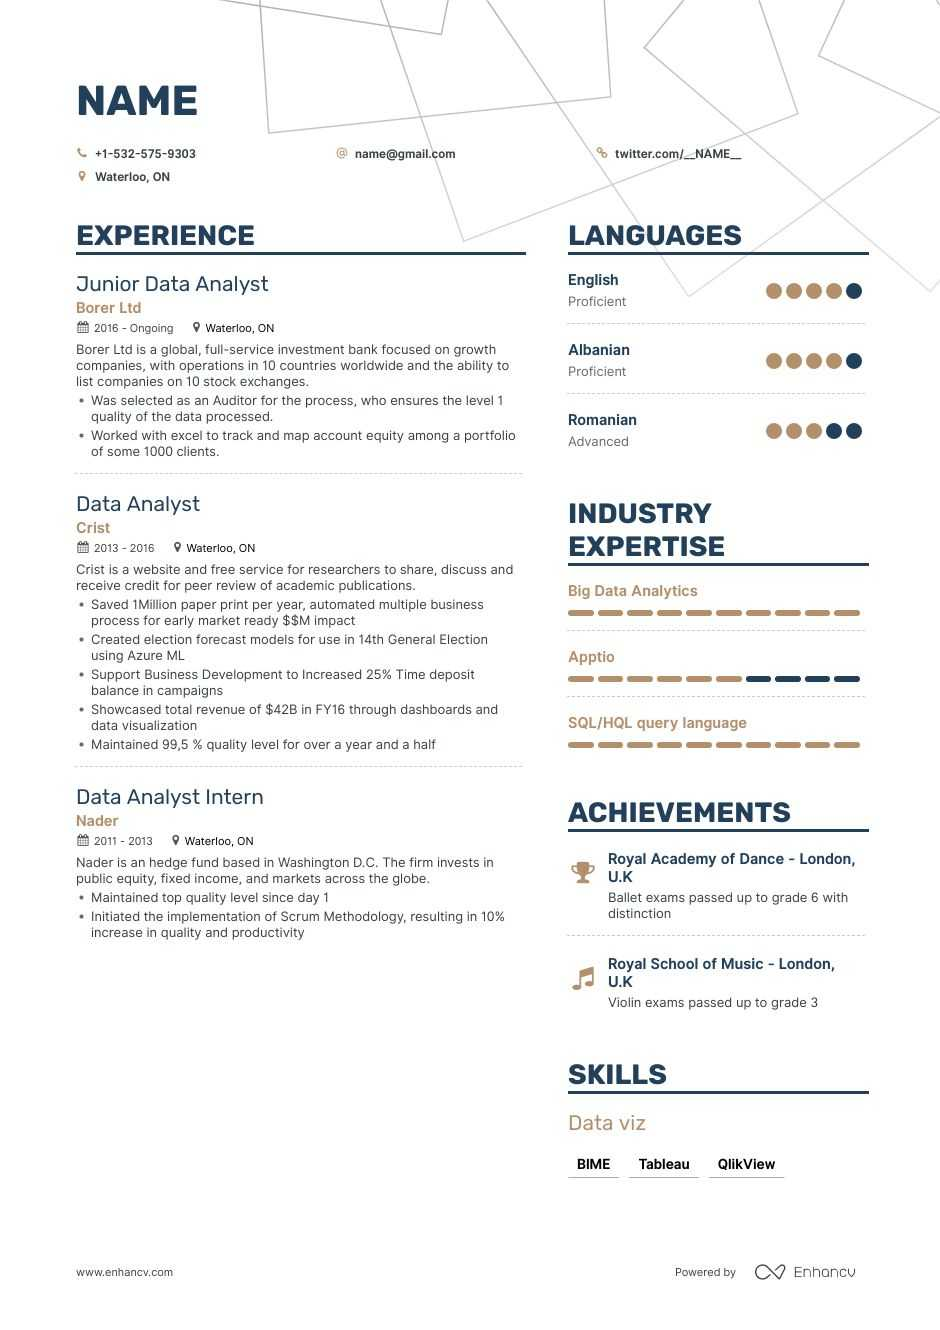 security analyst resume examples skills templates more for entry level cyber sample auto Resume Entry Level Cyber Security Analyst Resume Sample